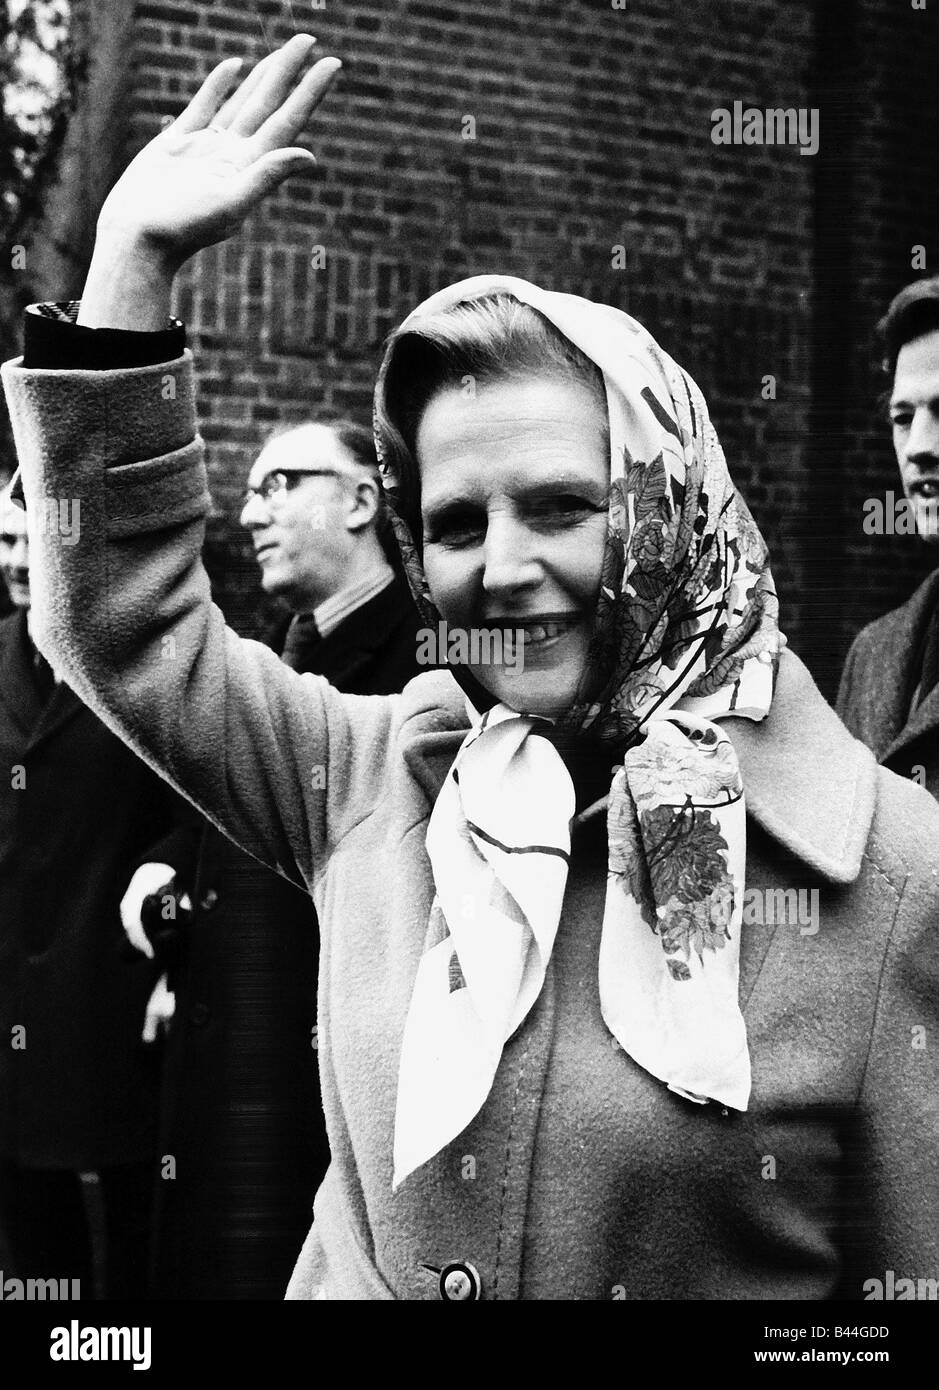 Margaret Thatcher Prime Minister leader of the Conservative Party 1987 FEY003 LFEY003 Margaret Thatcher Collection - Stock Image